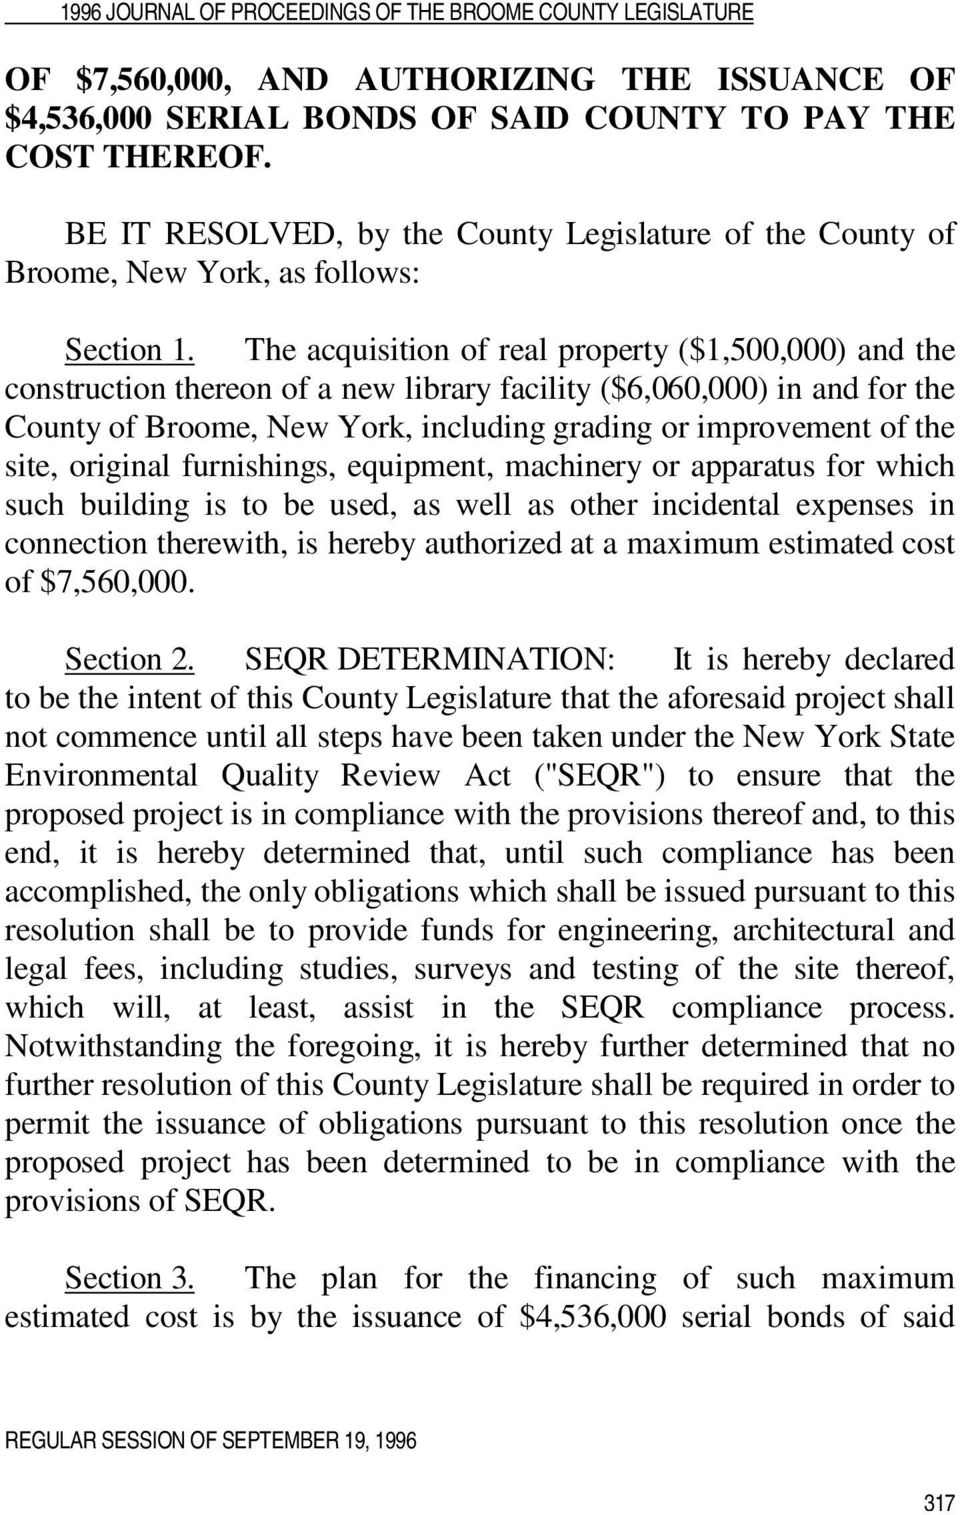 The acquisition of real property ($1,500,000) and the construction thereon of a new library facility ($6,060,000) in and for the County of Broome, New York, including grading or improvement of the